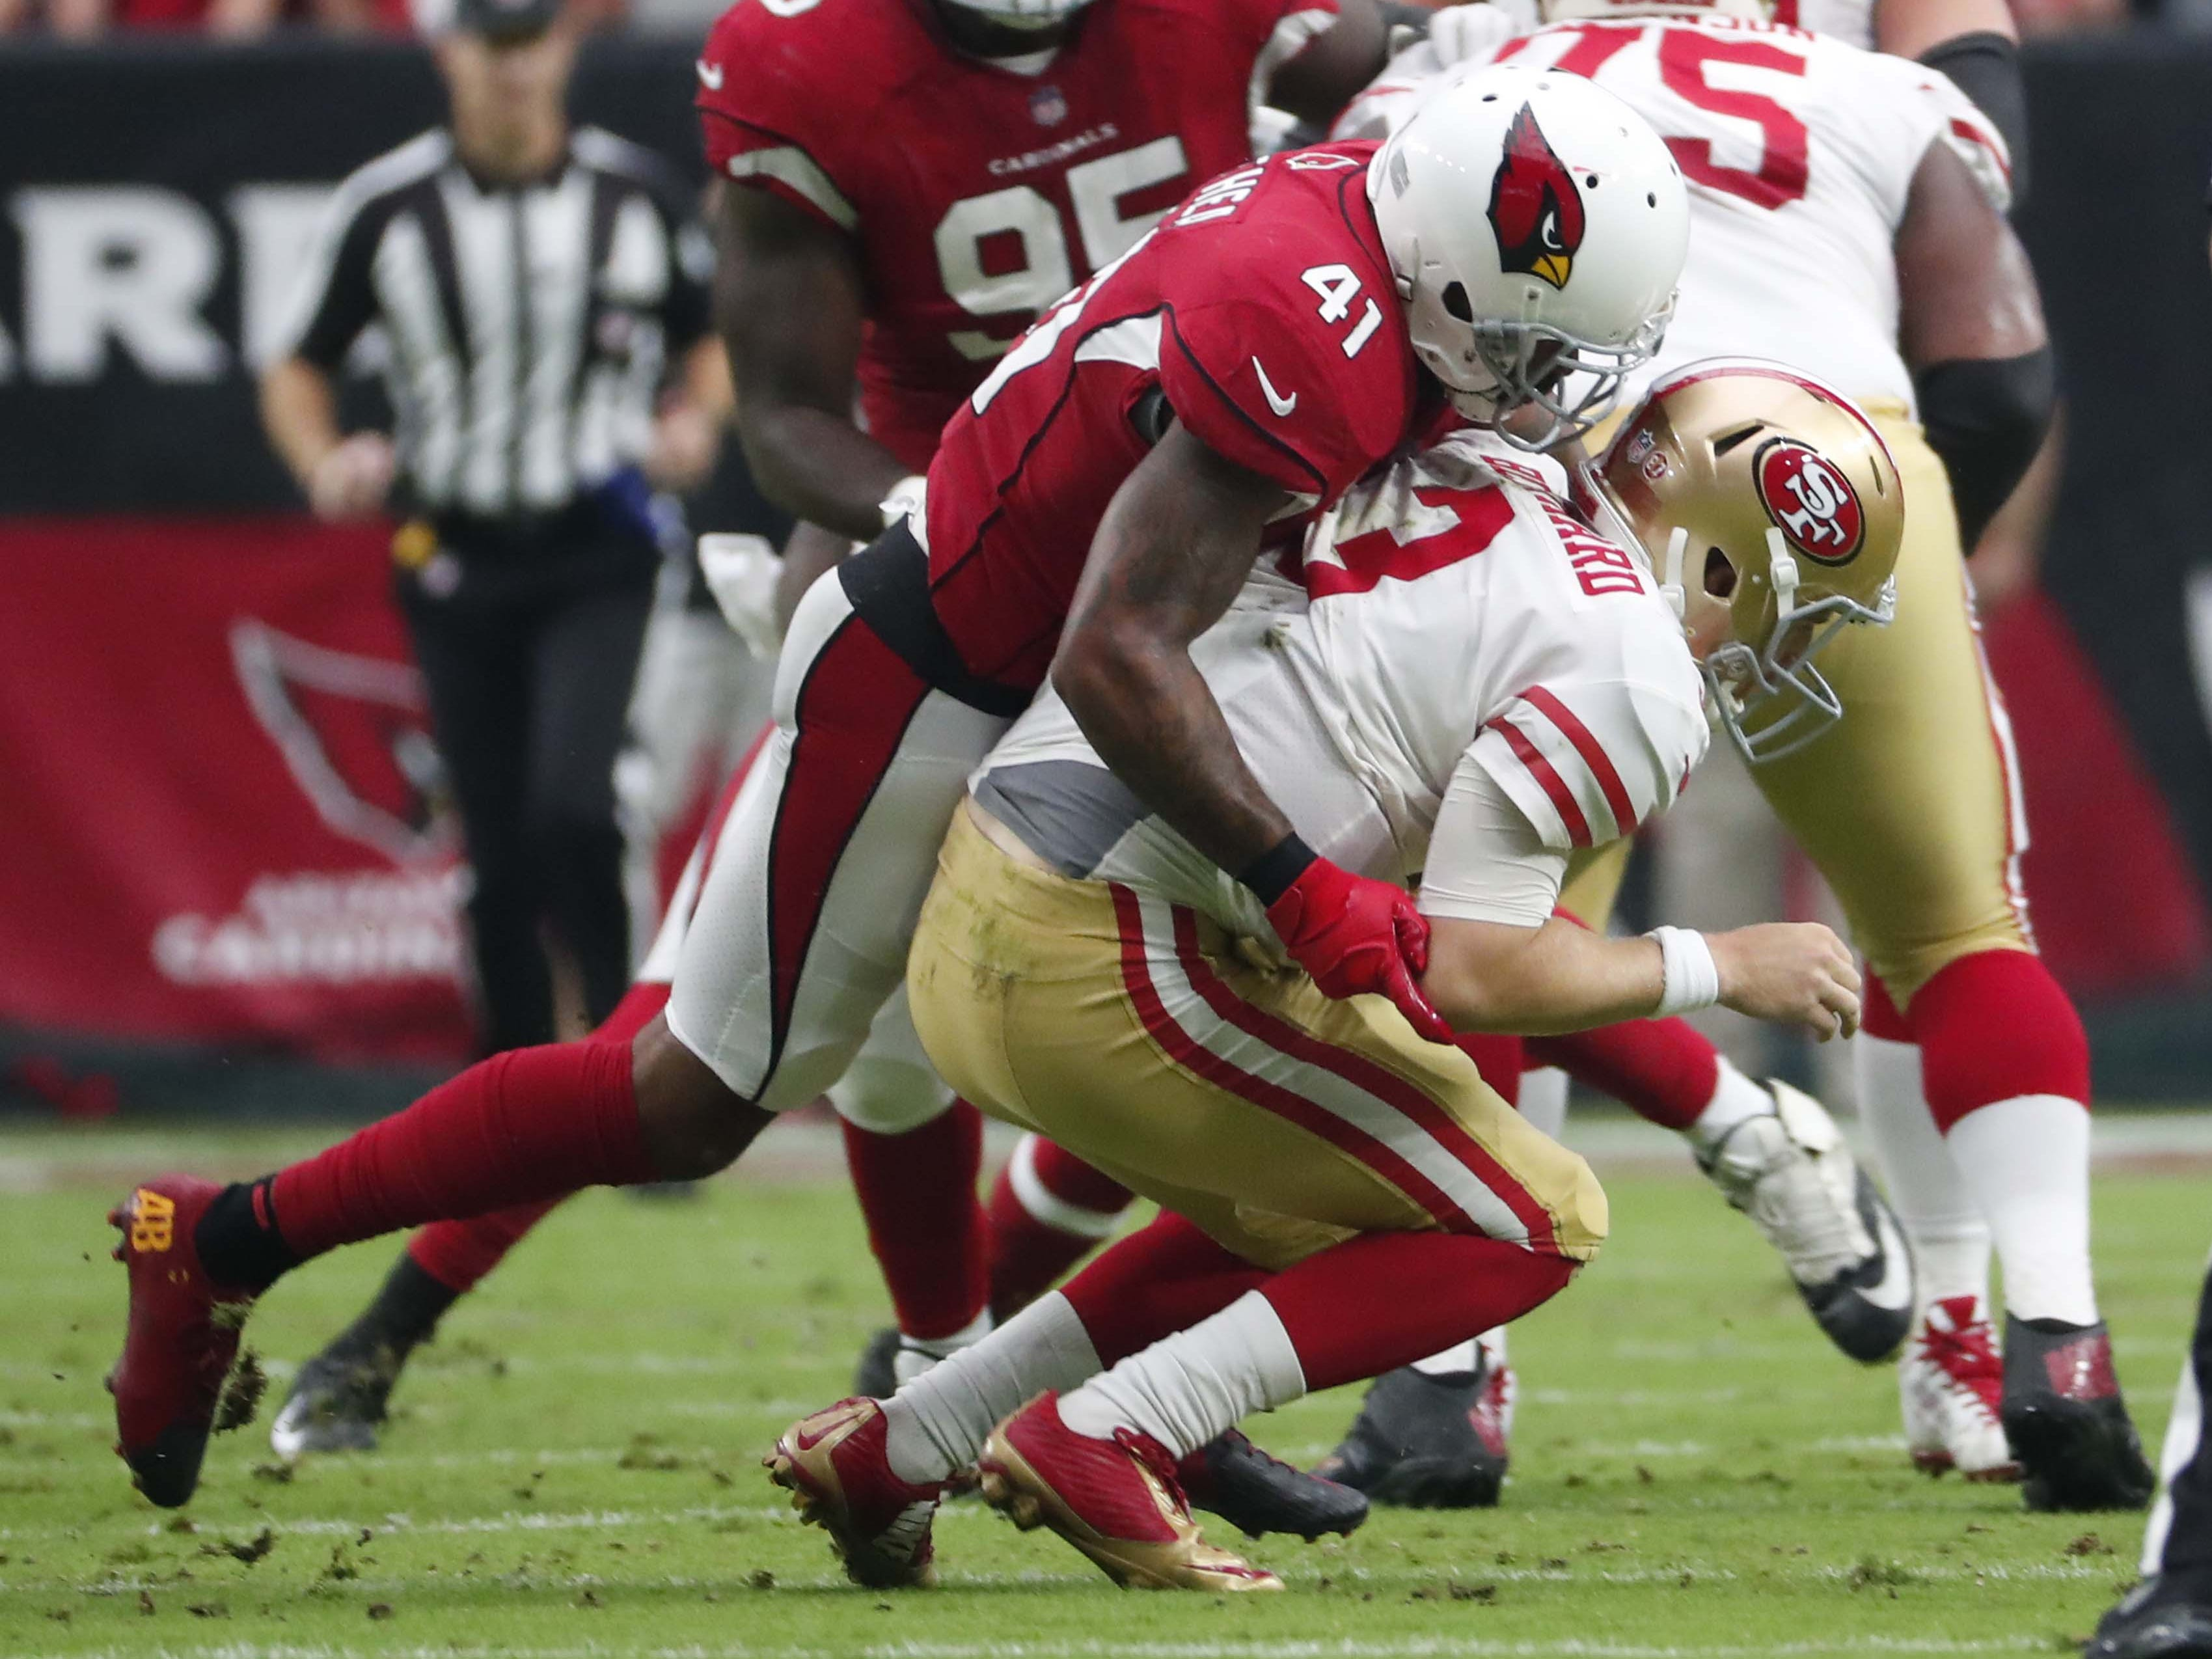 Arizona Cardinals free safety Antoine Bethea (41) sacks San Francisco 49ers quarterback C.J. Beathard (3) in the first quarter during NFL action against the San Francisco 49ers on Oct. 28 at State Farm Stadium.